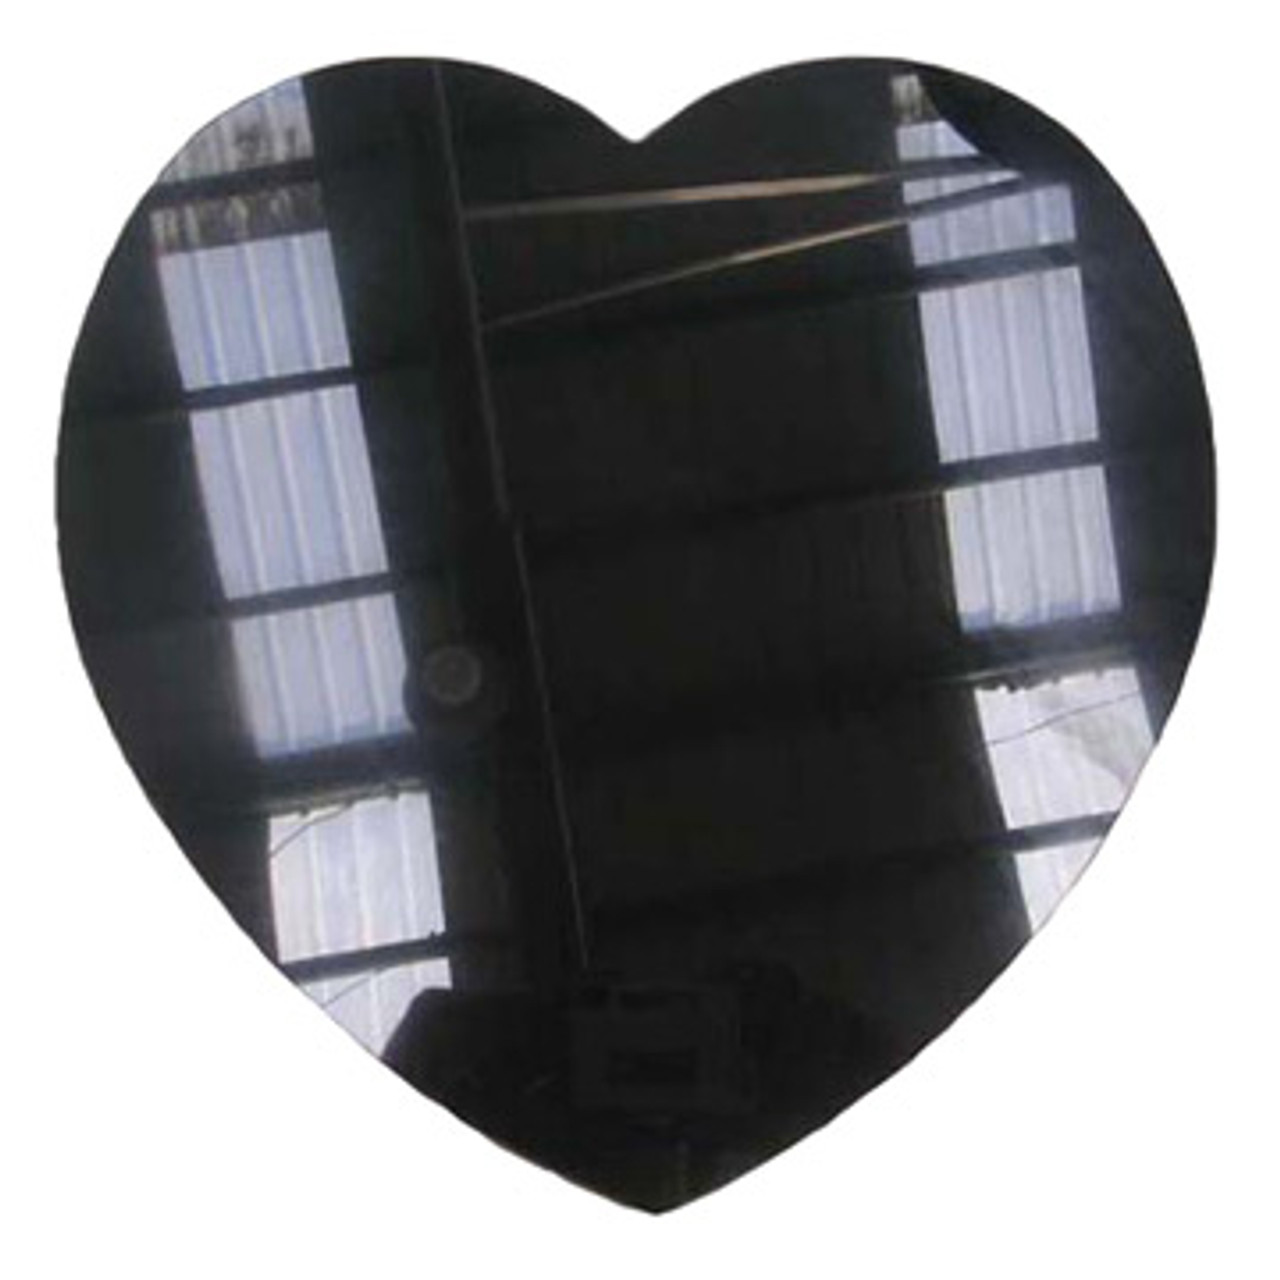 M-AB-10HeartlASP: LaserGrade Absolute Black Marble, 10 inch Heart x 8mm, ASP, All Surfaces Polished (6F) - Case of 10